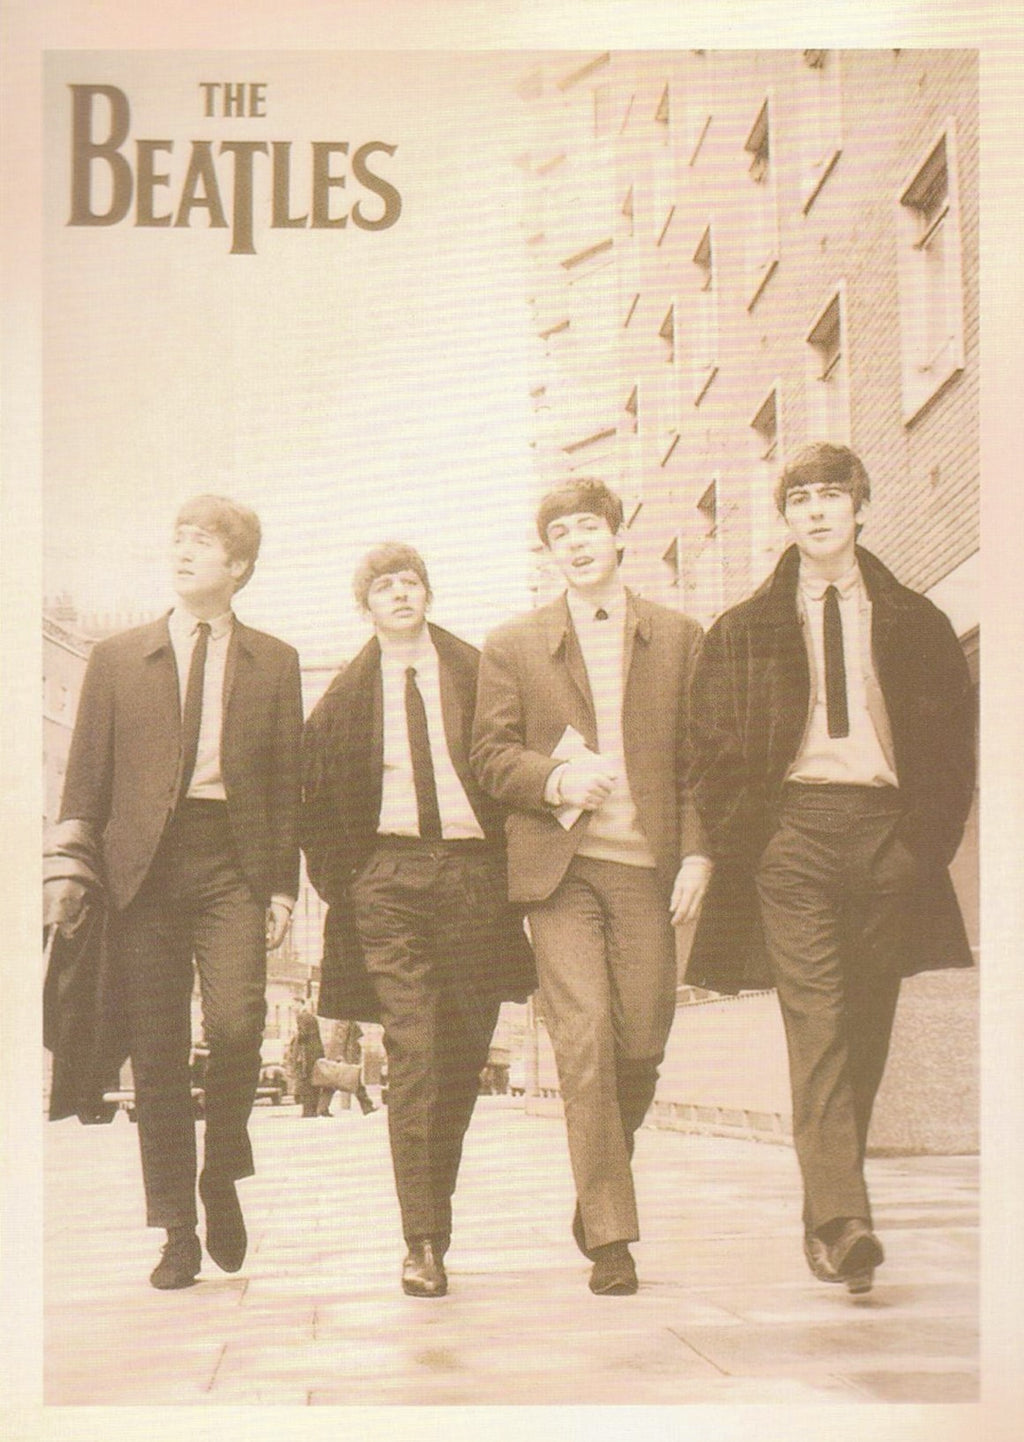 THE BEATLES: COLLECTIBLE 'ARTIST' POSTCARD - Busy Bee Emporium